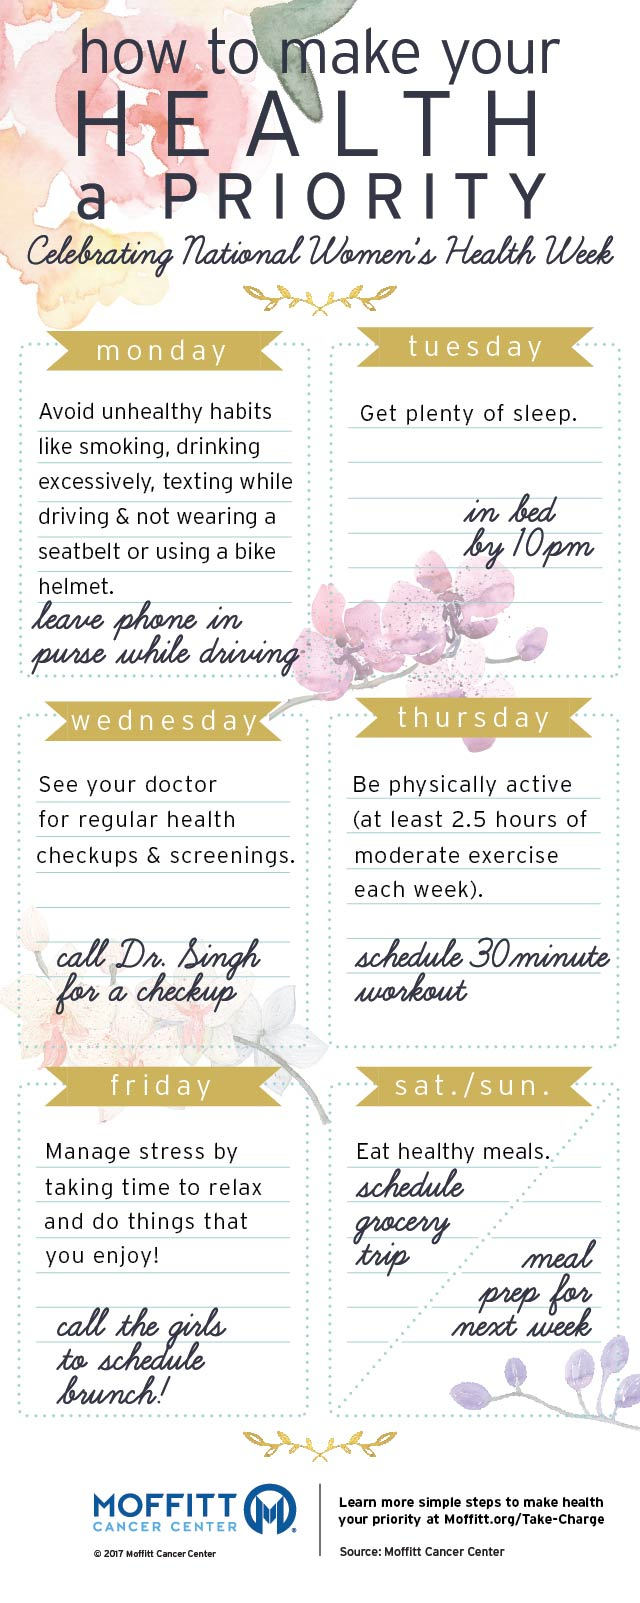 National Women's Health Week Infographic